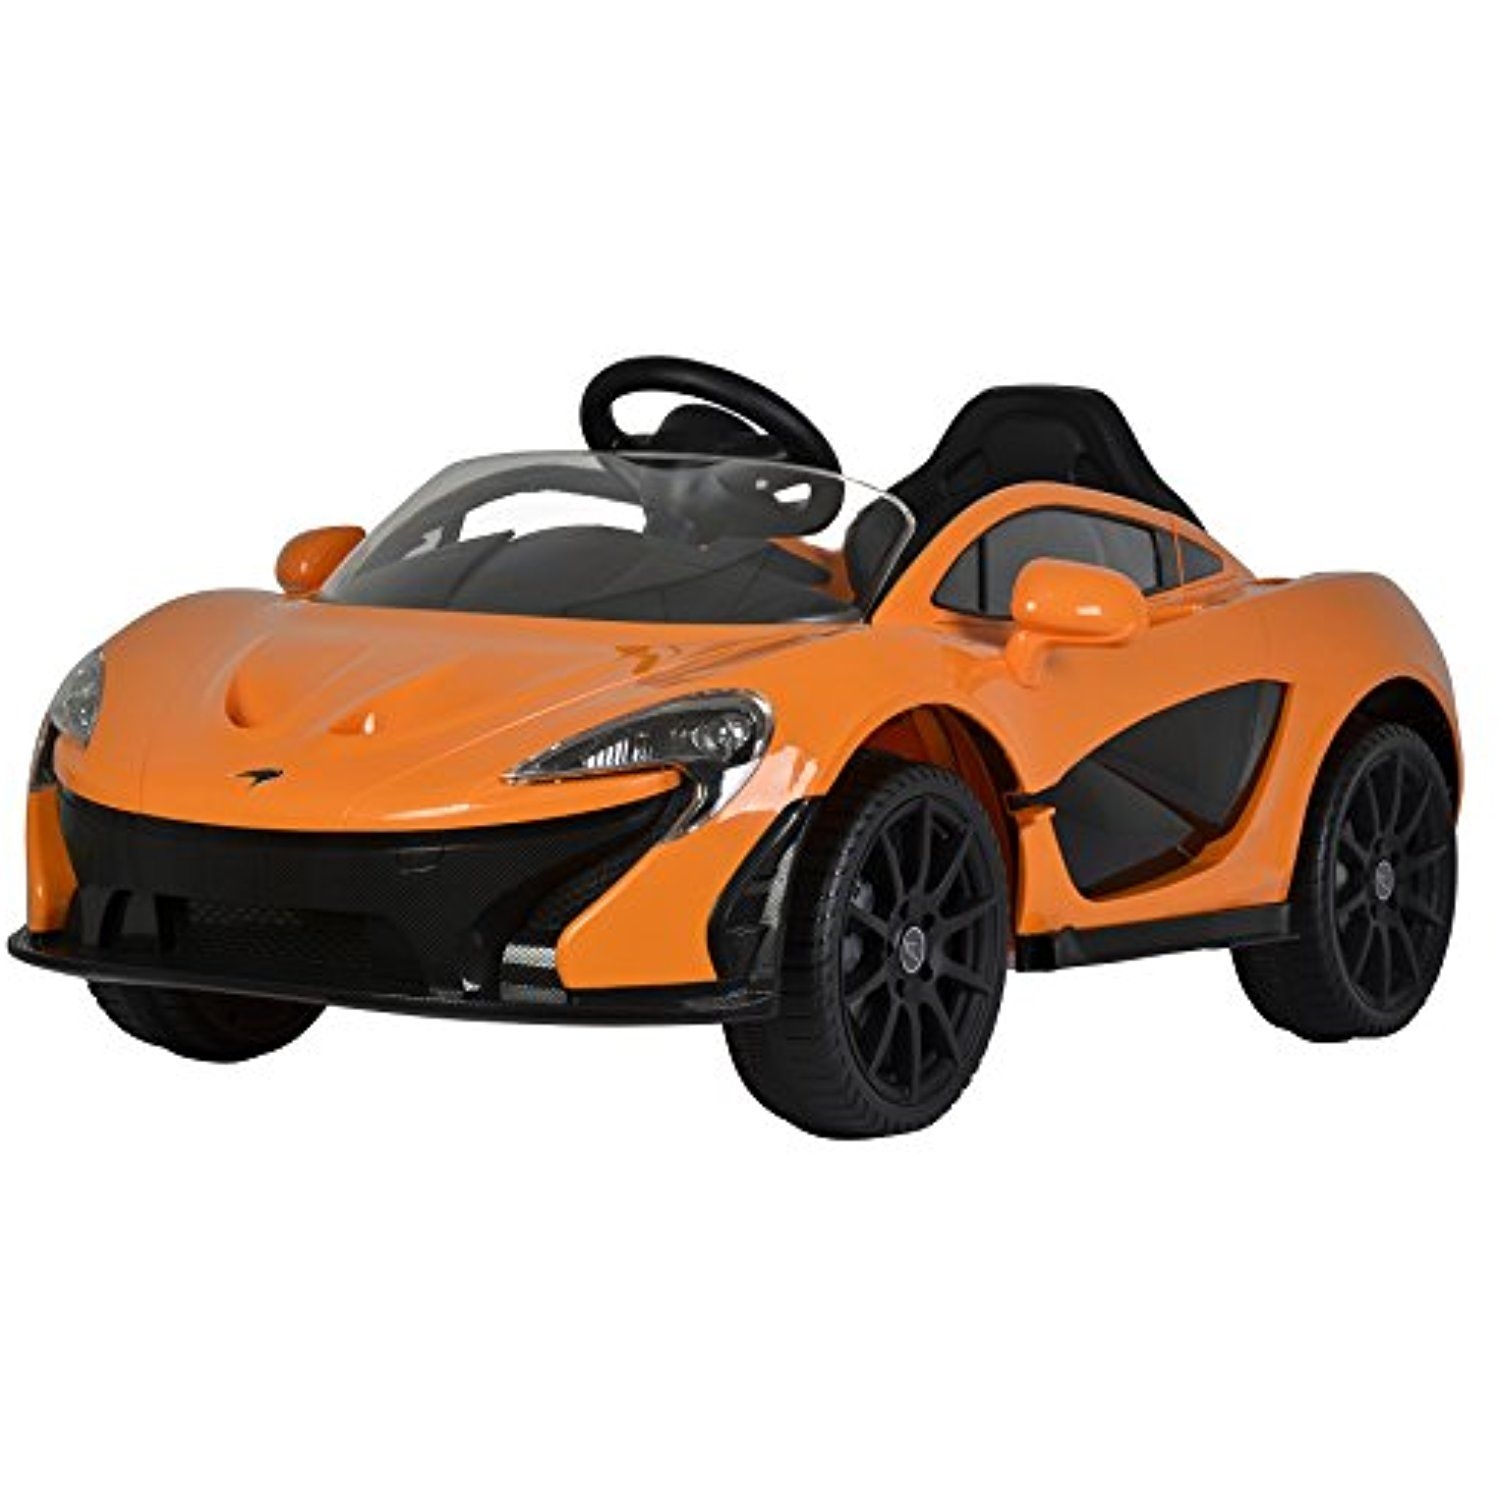 Best Ride On Cars Mclaren P1 12v Orange Want Additional Info Click On The Image This Is An Affiliate Link Tricyclesscooterswag Mclaren P1 Mclaren Car